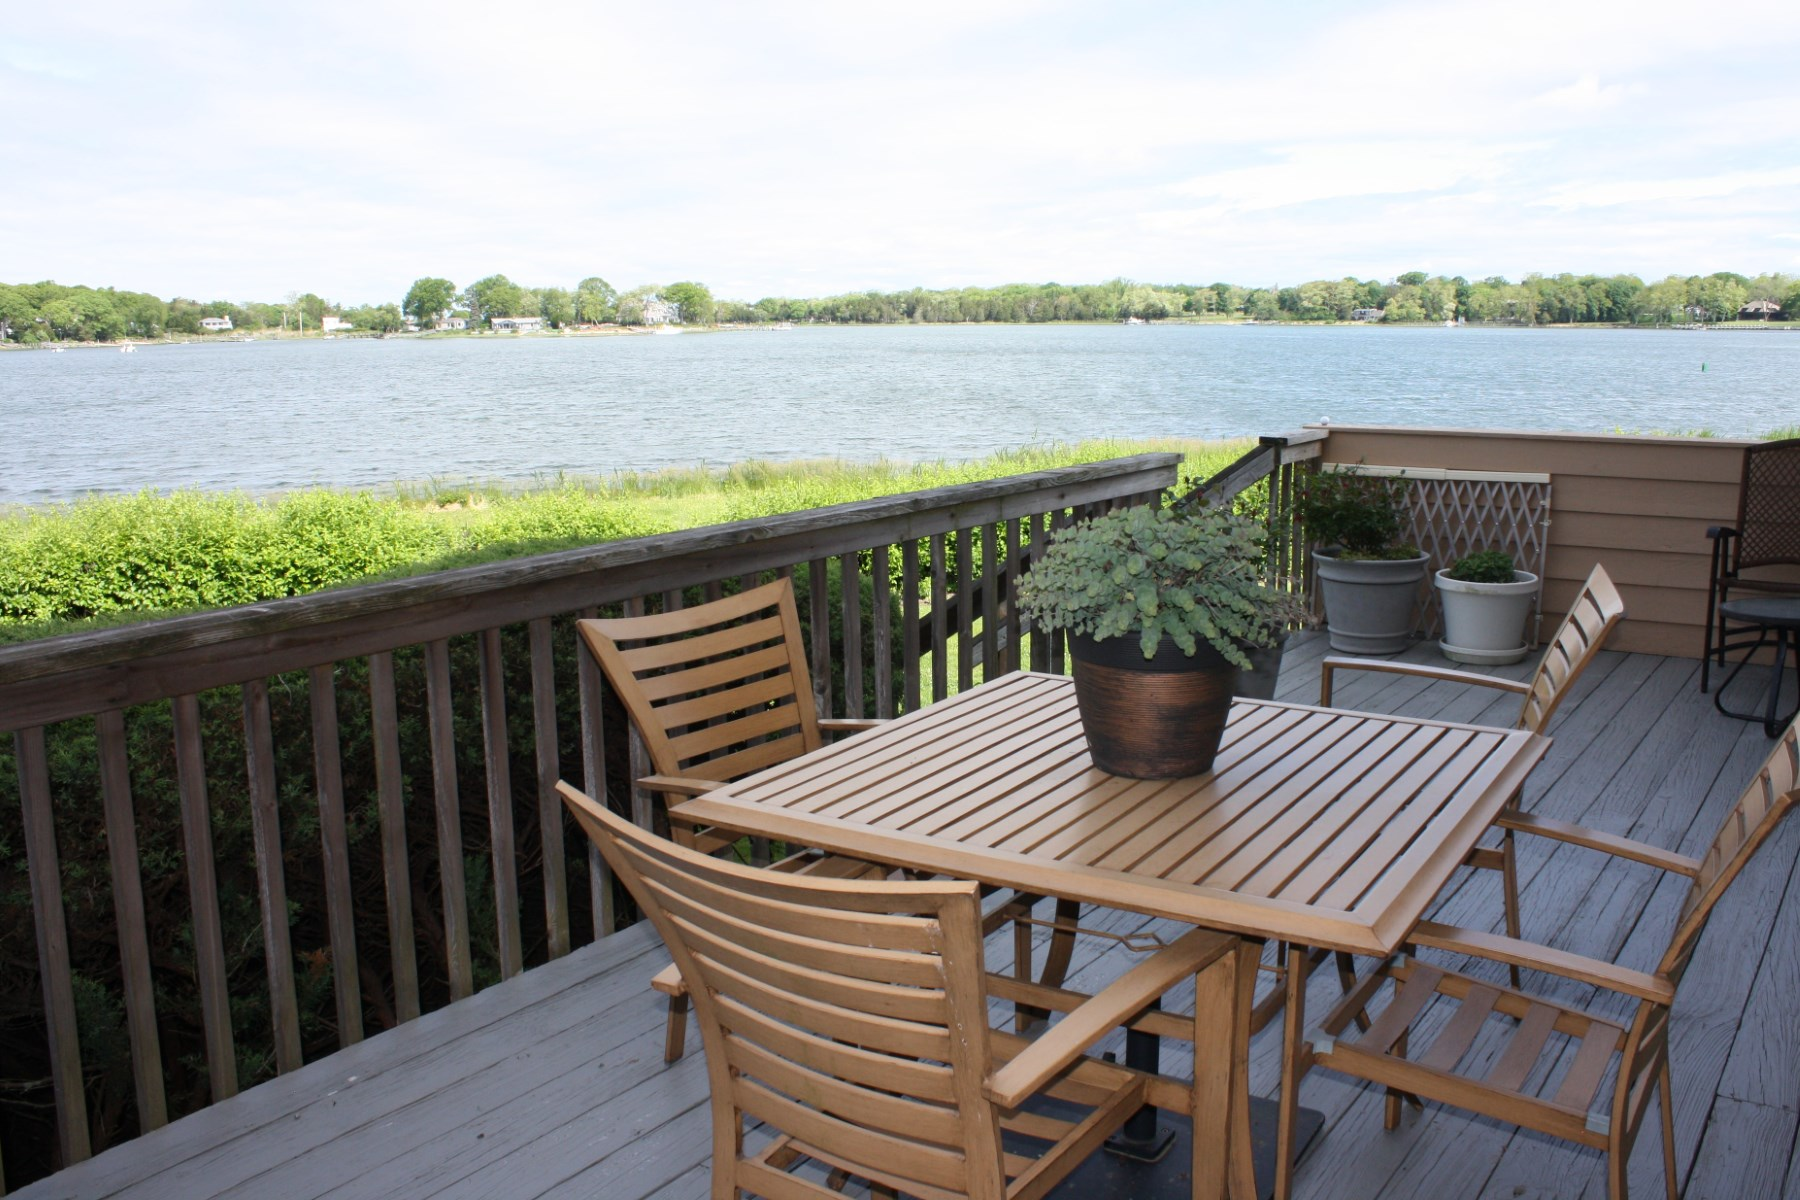 Condominium for Rent at 'THE VILLAS', SAG HARBOR ~ WATERVIEWS, 68 West Water Street, Unit 22 Sag Harbor, New York 11963 United States